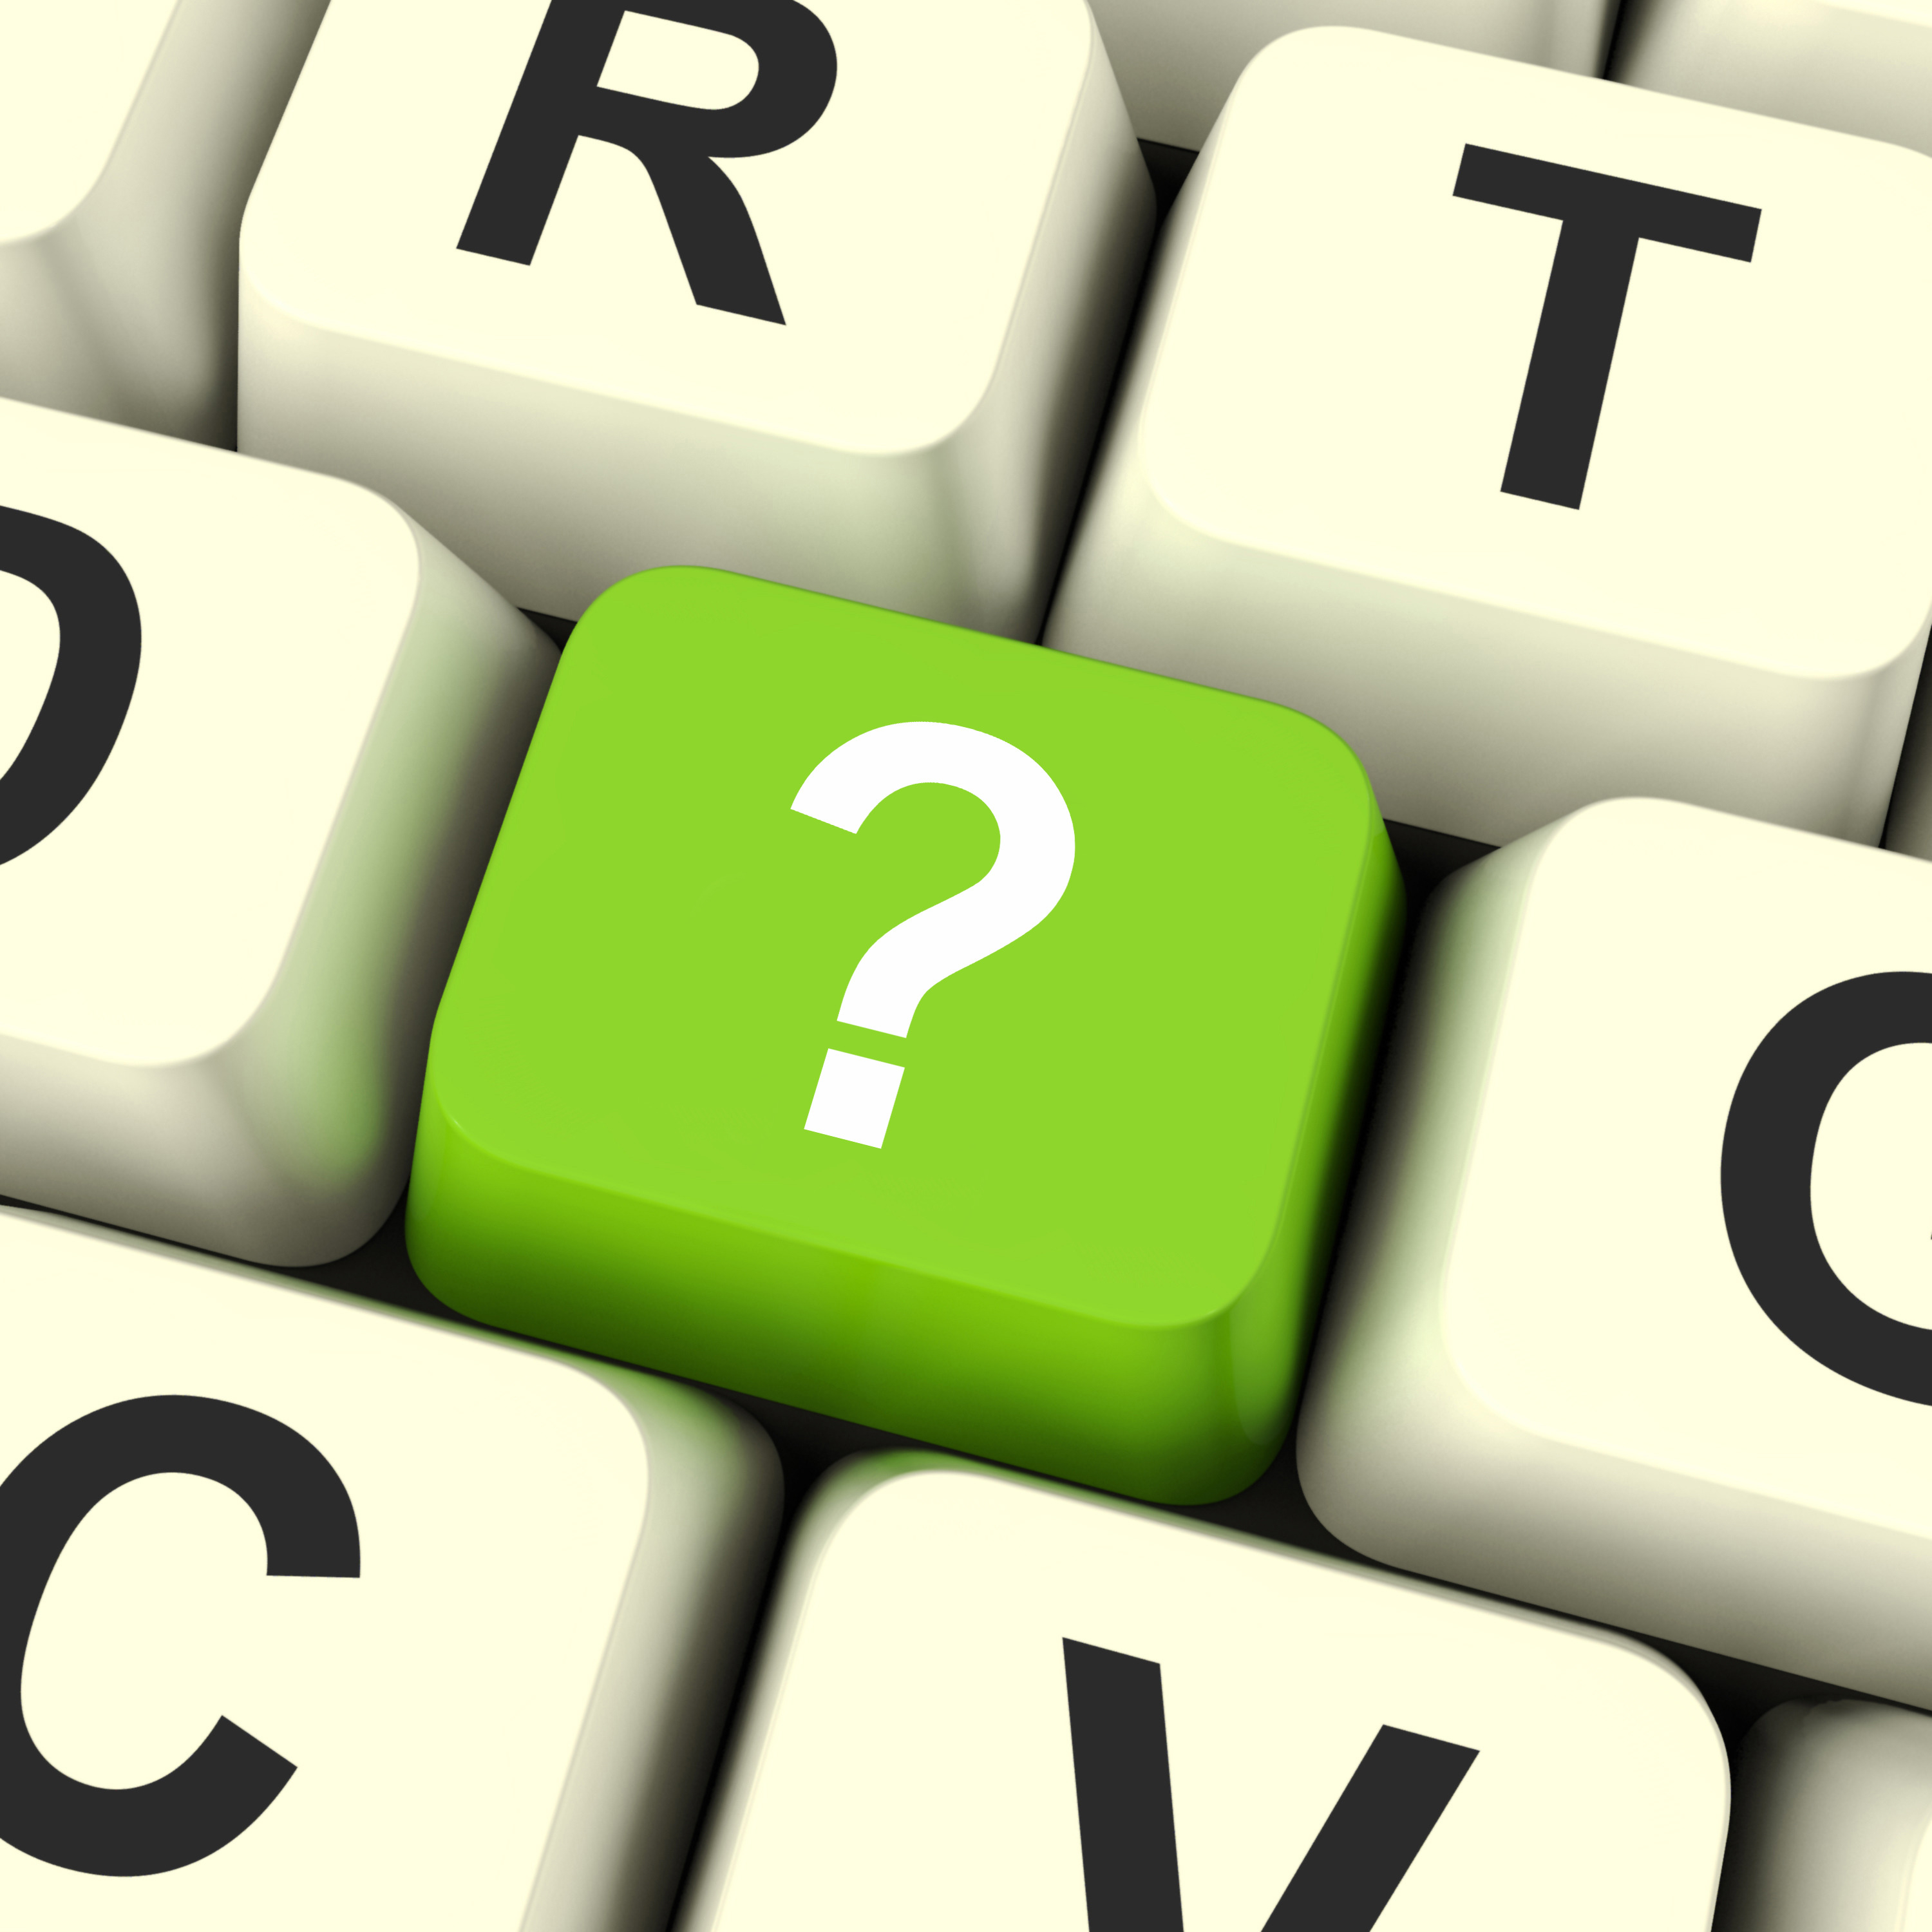 Question Mark Key On Keyboard Showing Help Confused And Doubt